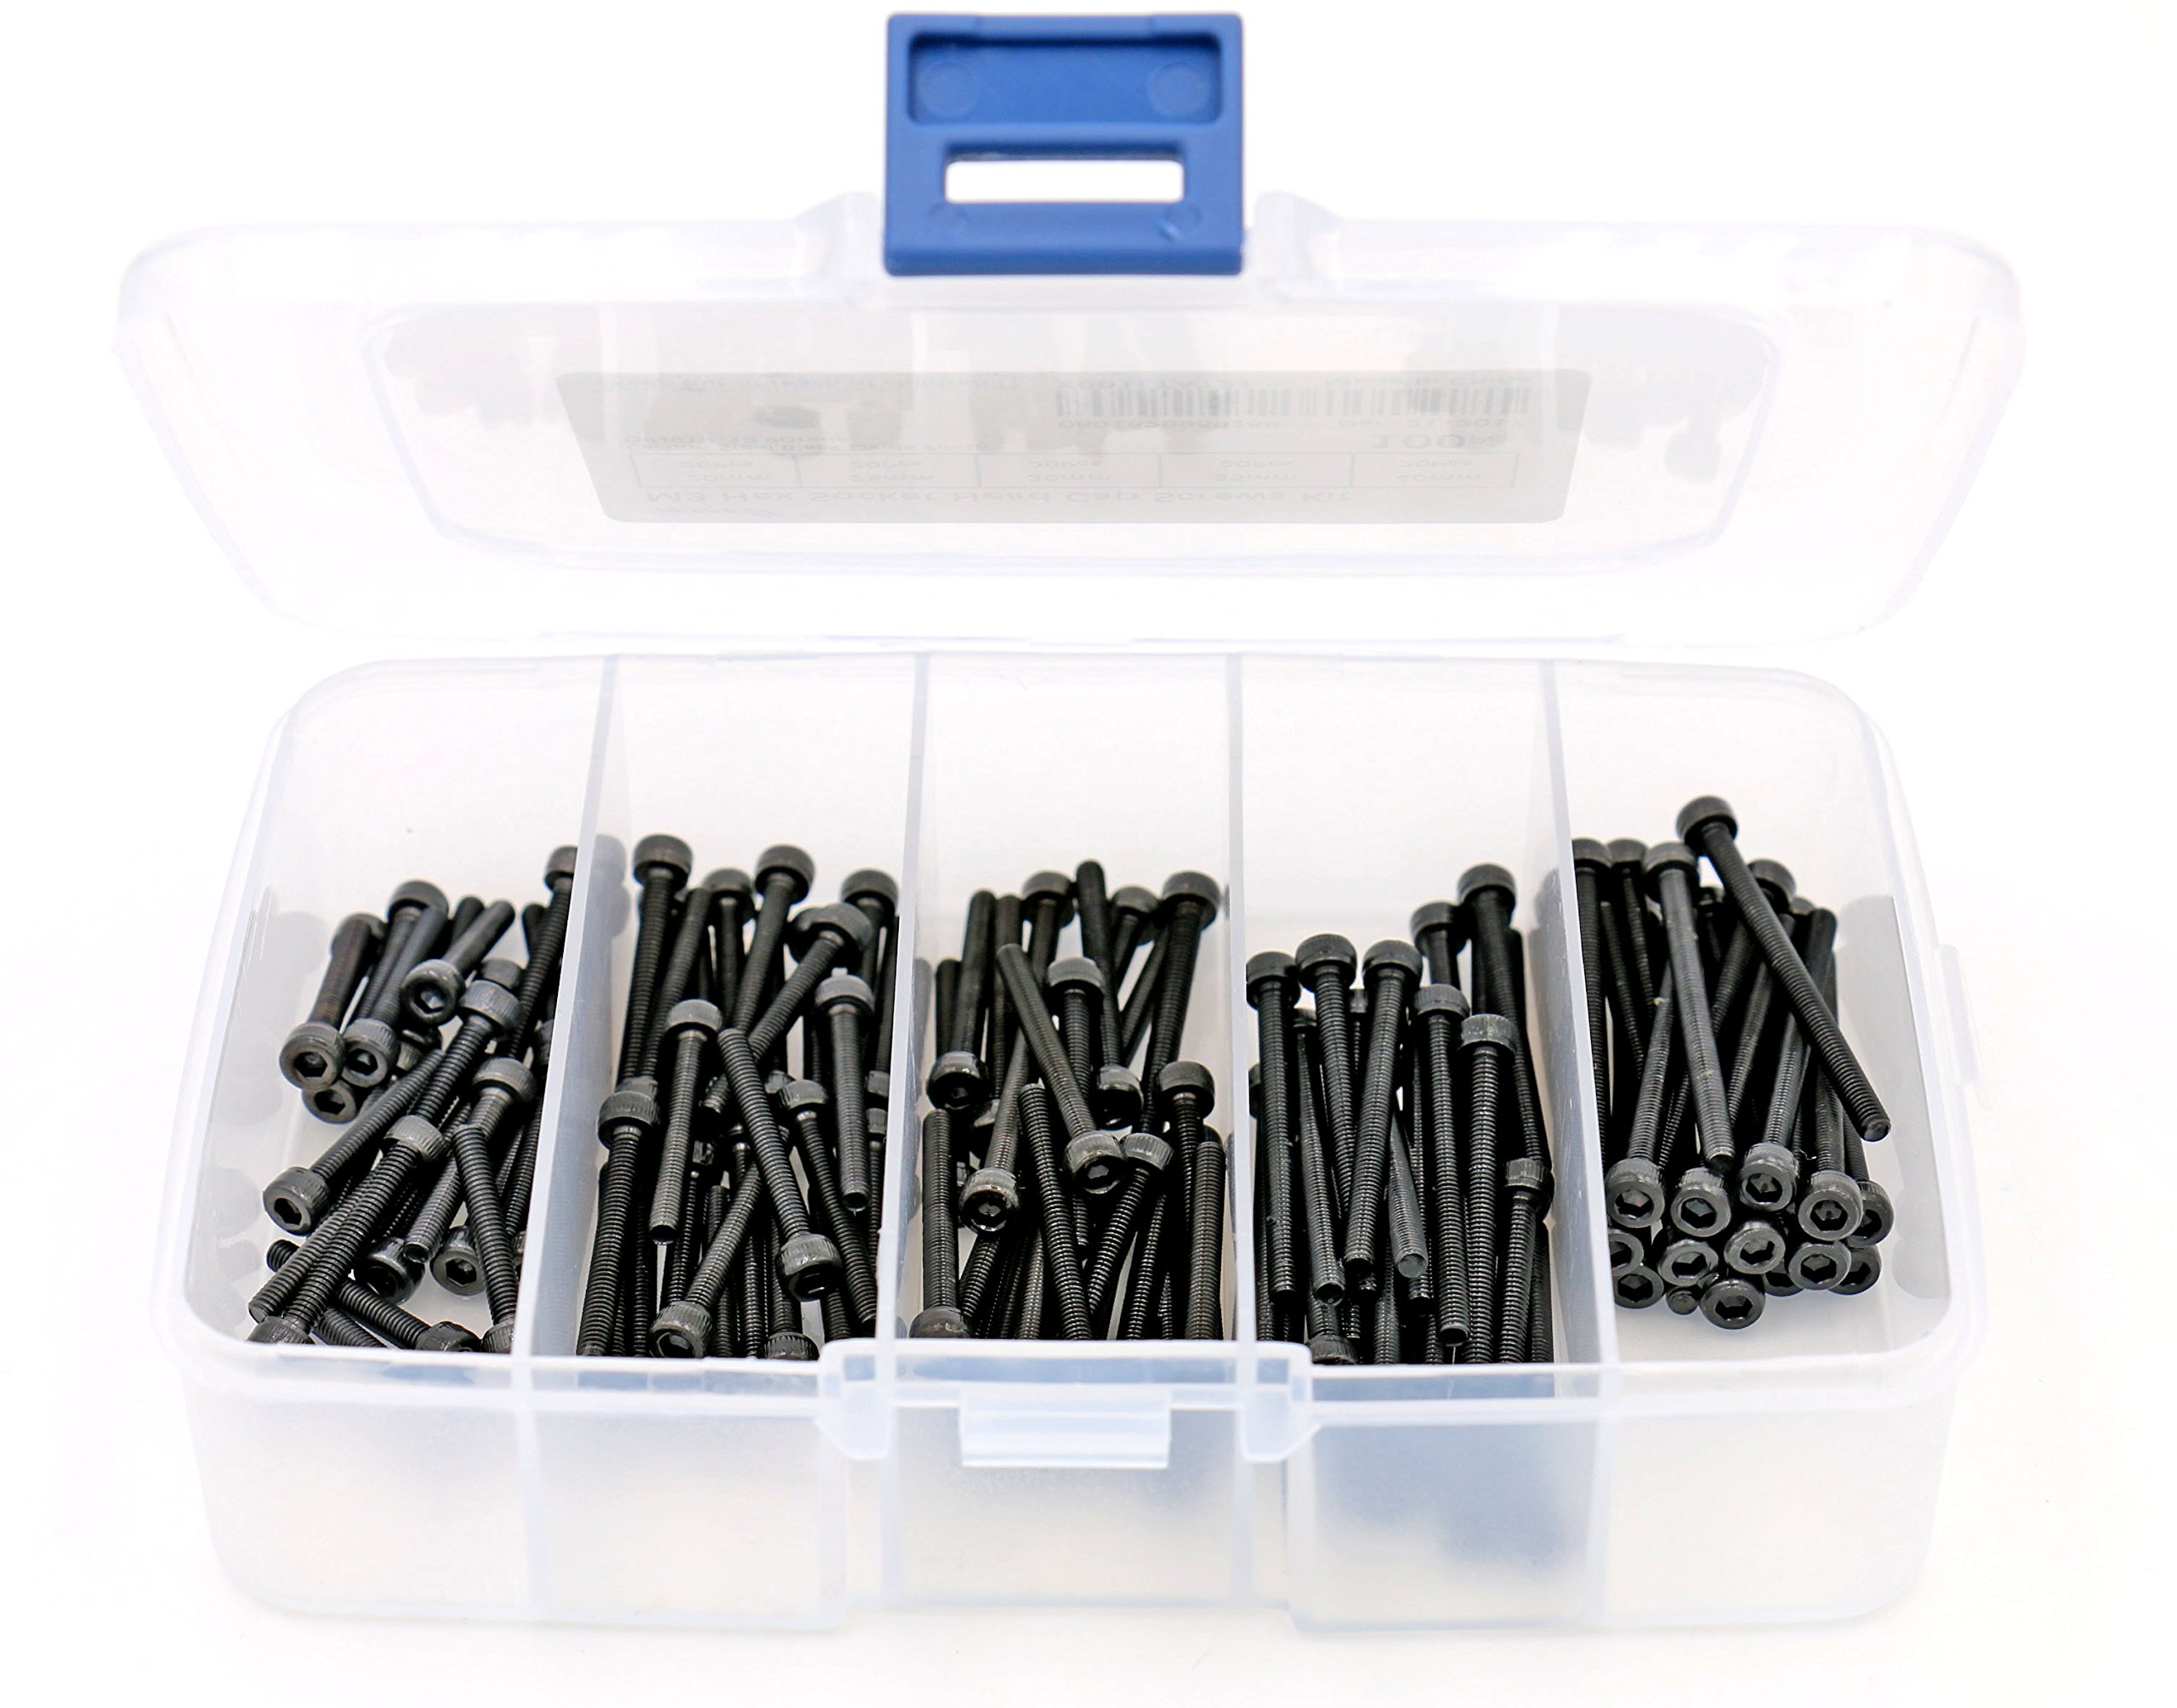 iExcell 100 Pcs 5 Sizes Assortment M3 x 20mm/25mm/30mm/35mm/40mm Hex Socket Head Cap Screws Kit, Alloy Steel Black Oxide Finish, 12.9 Grade, Fully Threaded